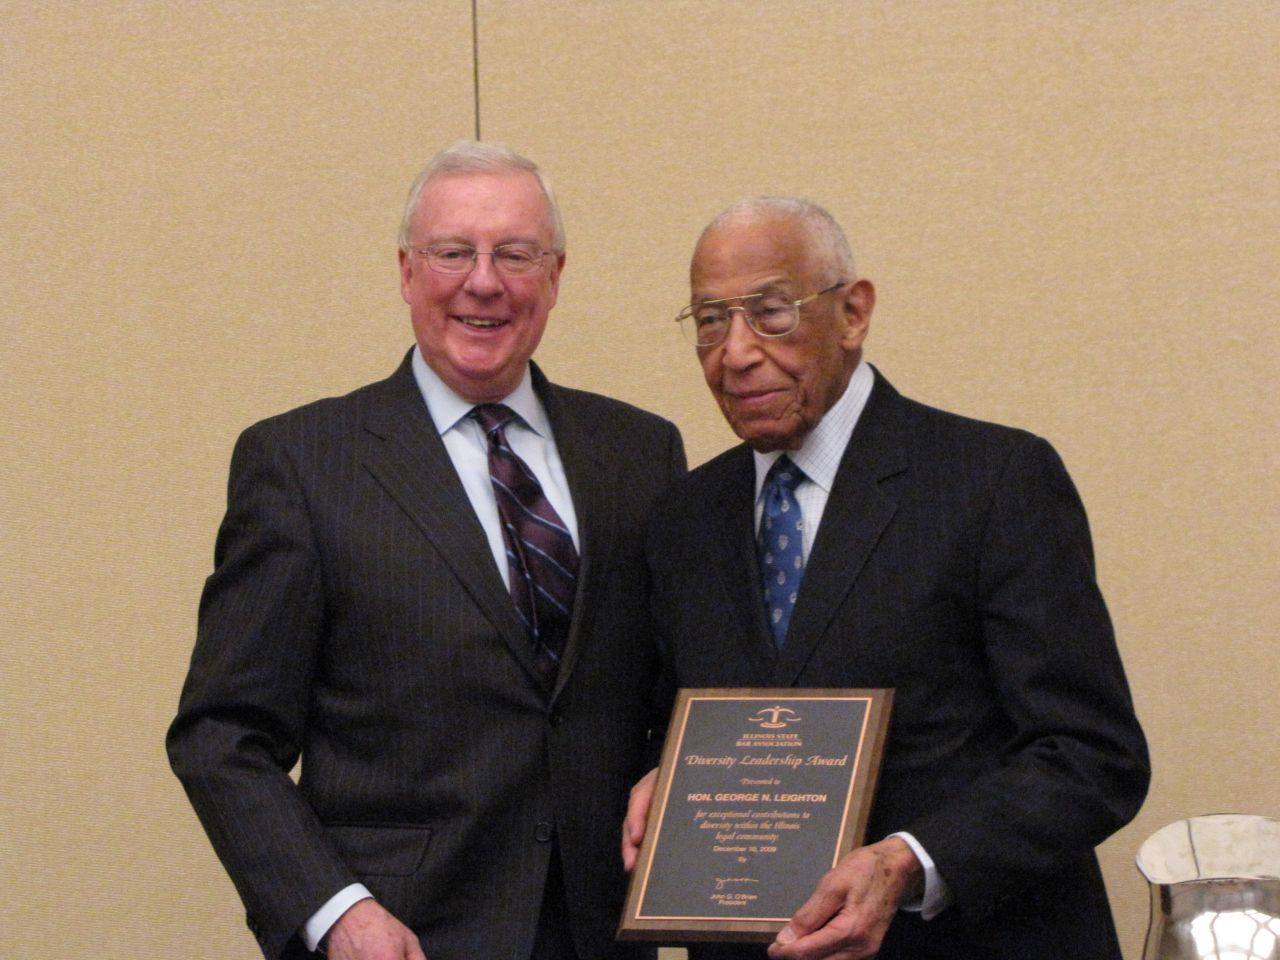 President O'Brien presents Judge Leighton with the ISBA's first Diversity Leadership Award